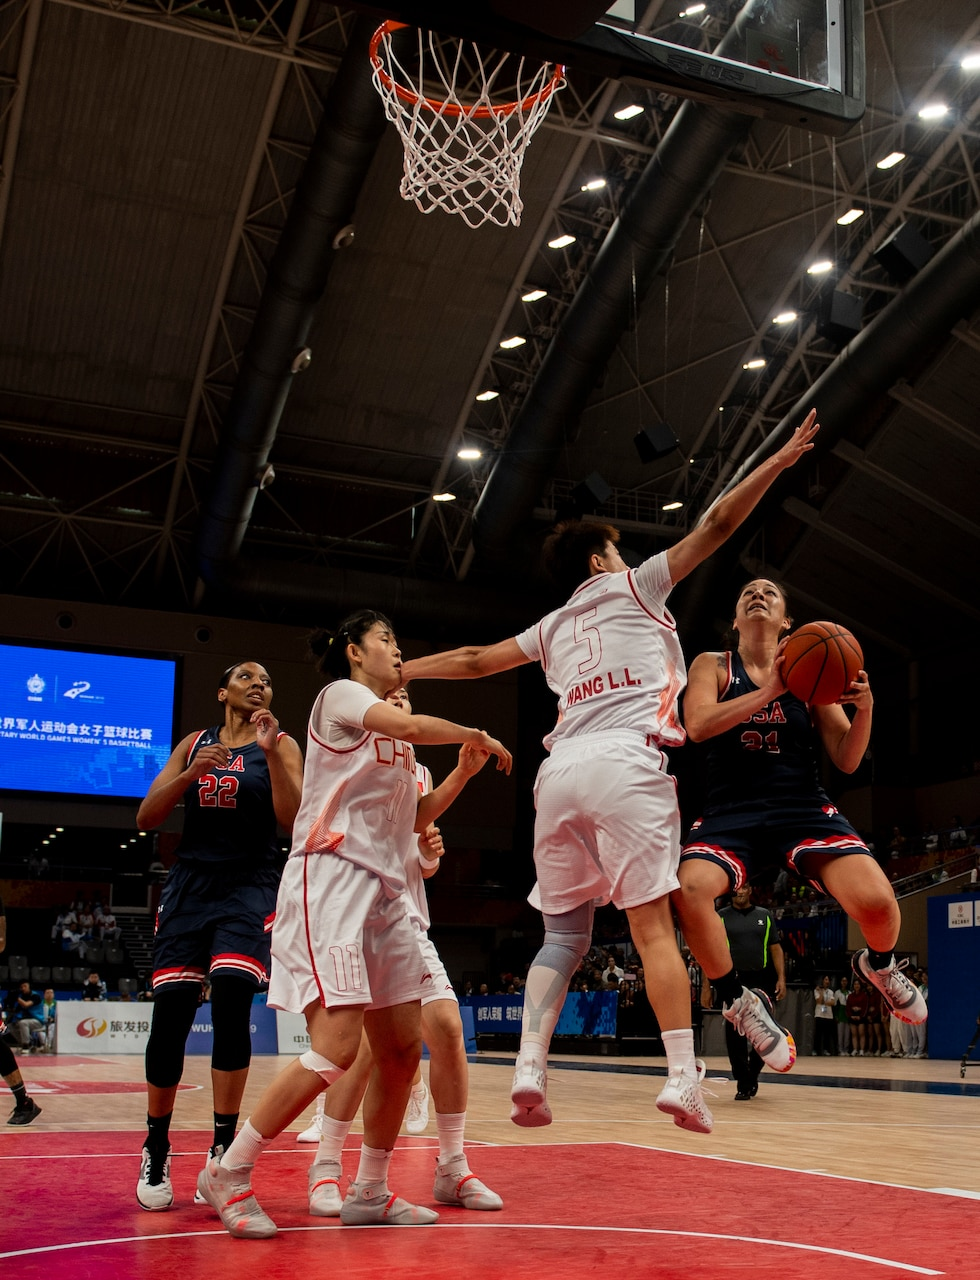 Basketball player holding the ball jumps to make a shot, closely guarded by a defender.